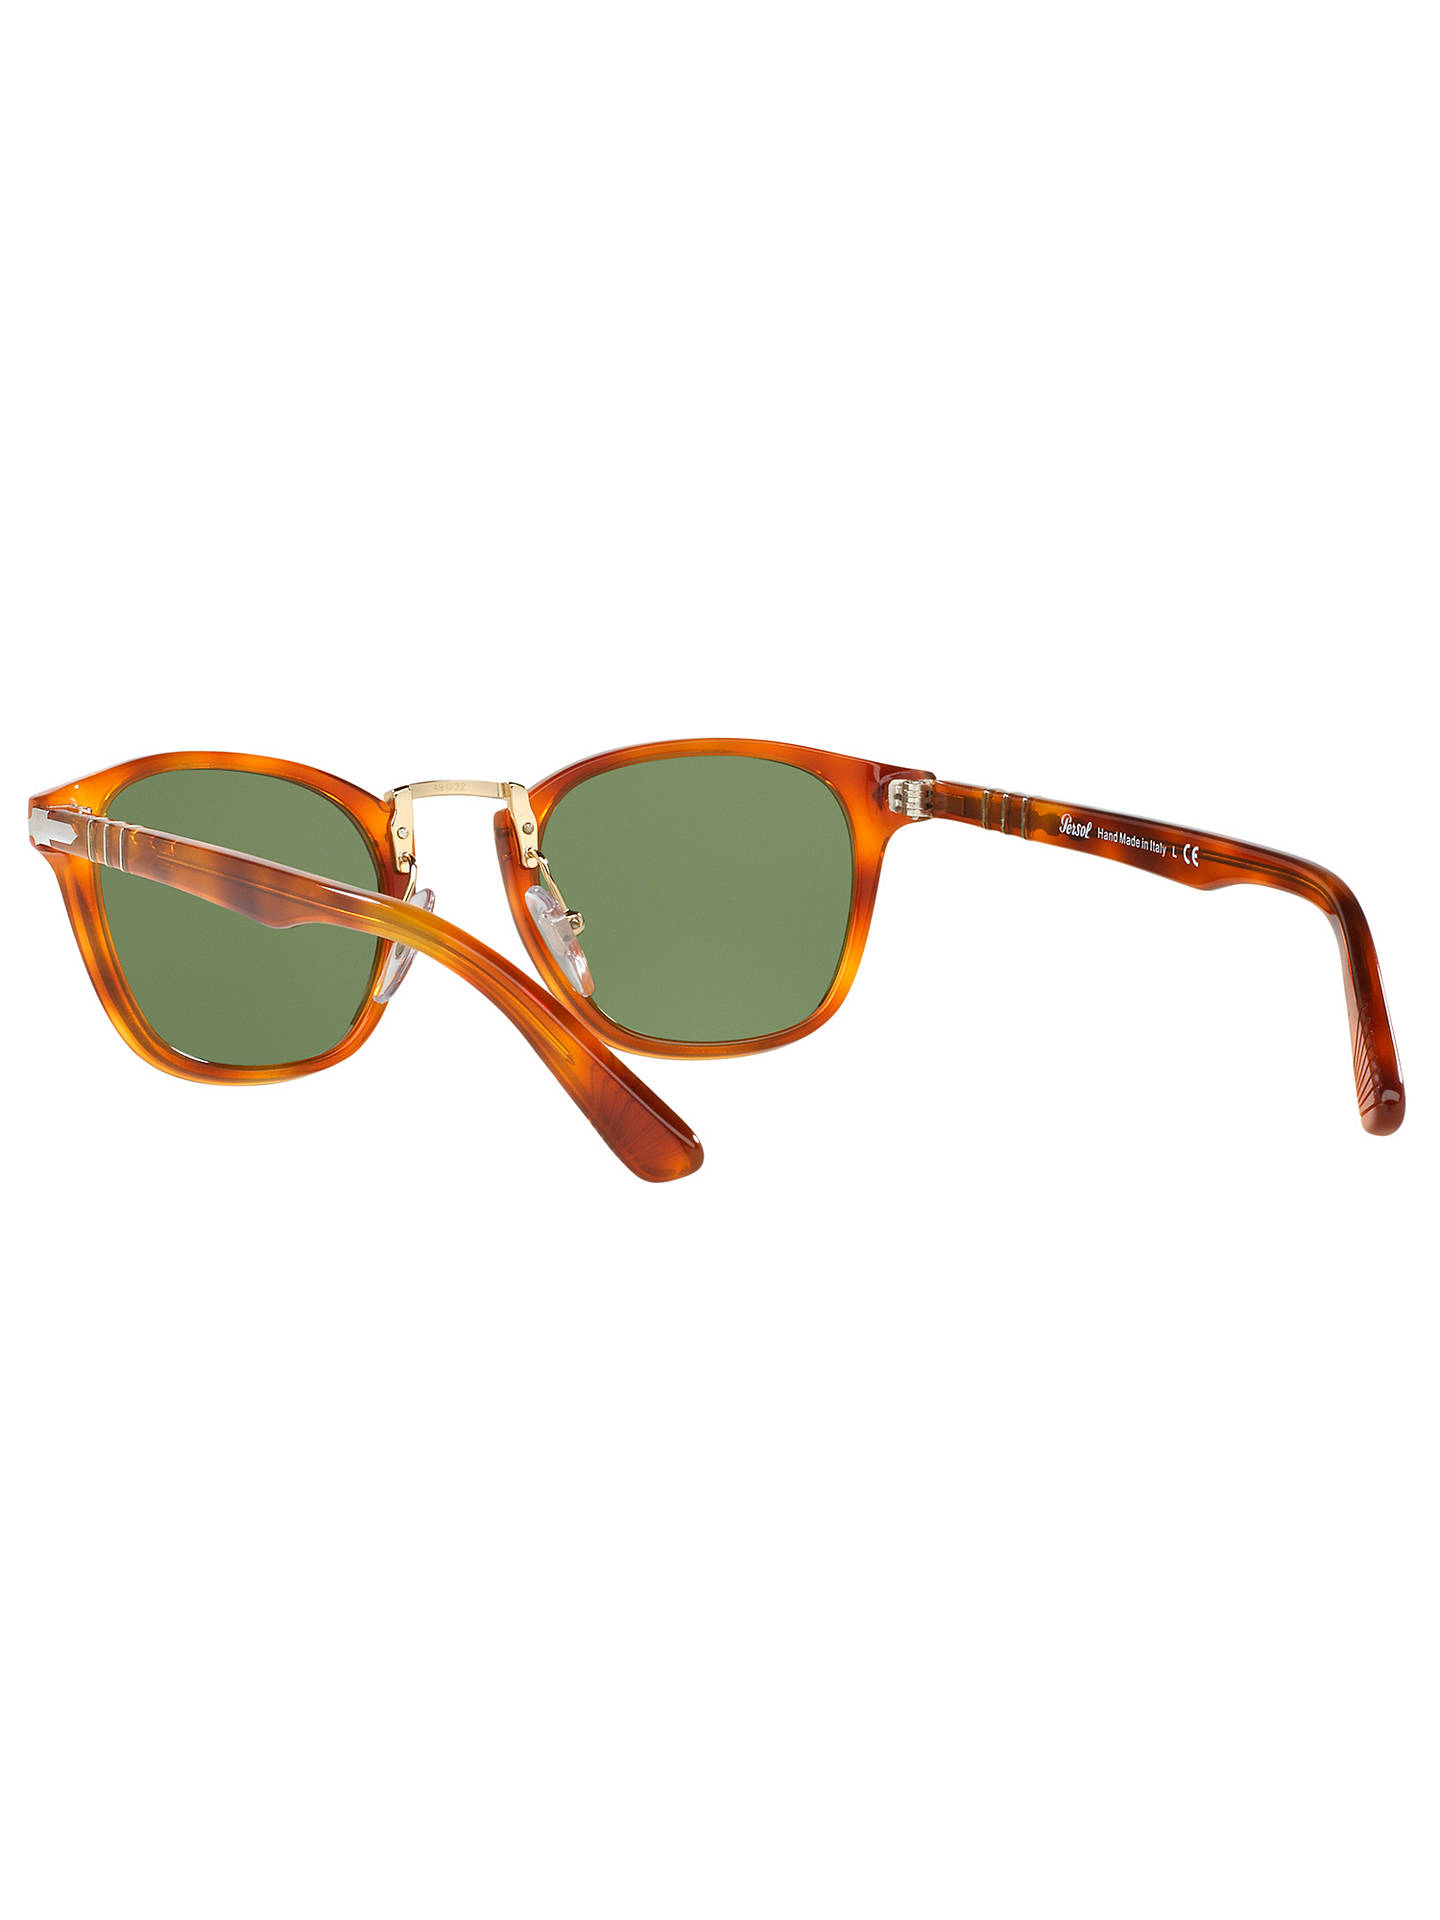 7b17bf4b5fca4 Persol PO3110S Oval Sunglasses at John Lewis   Partners